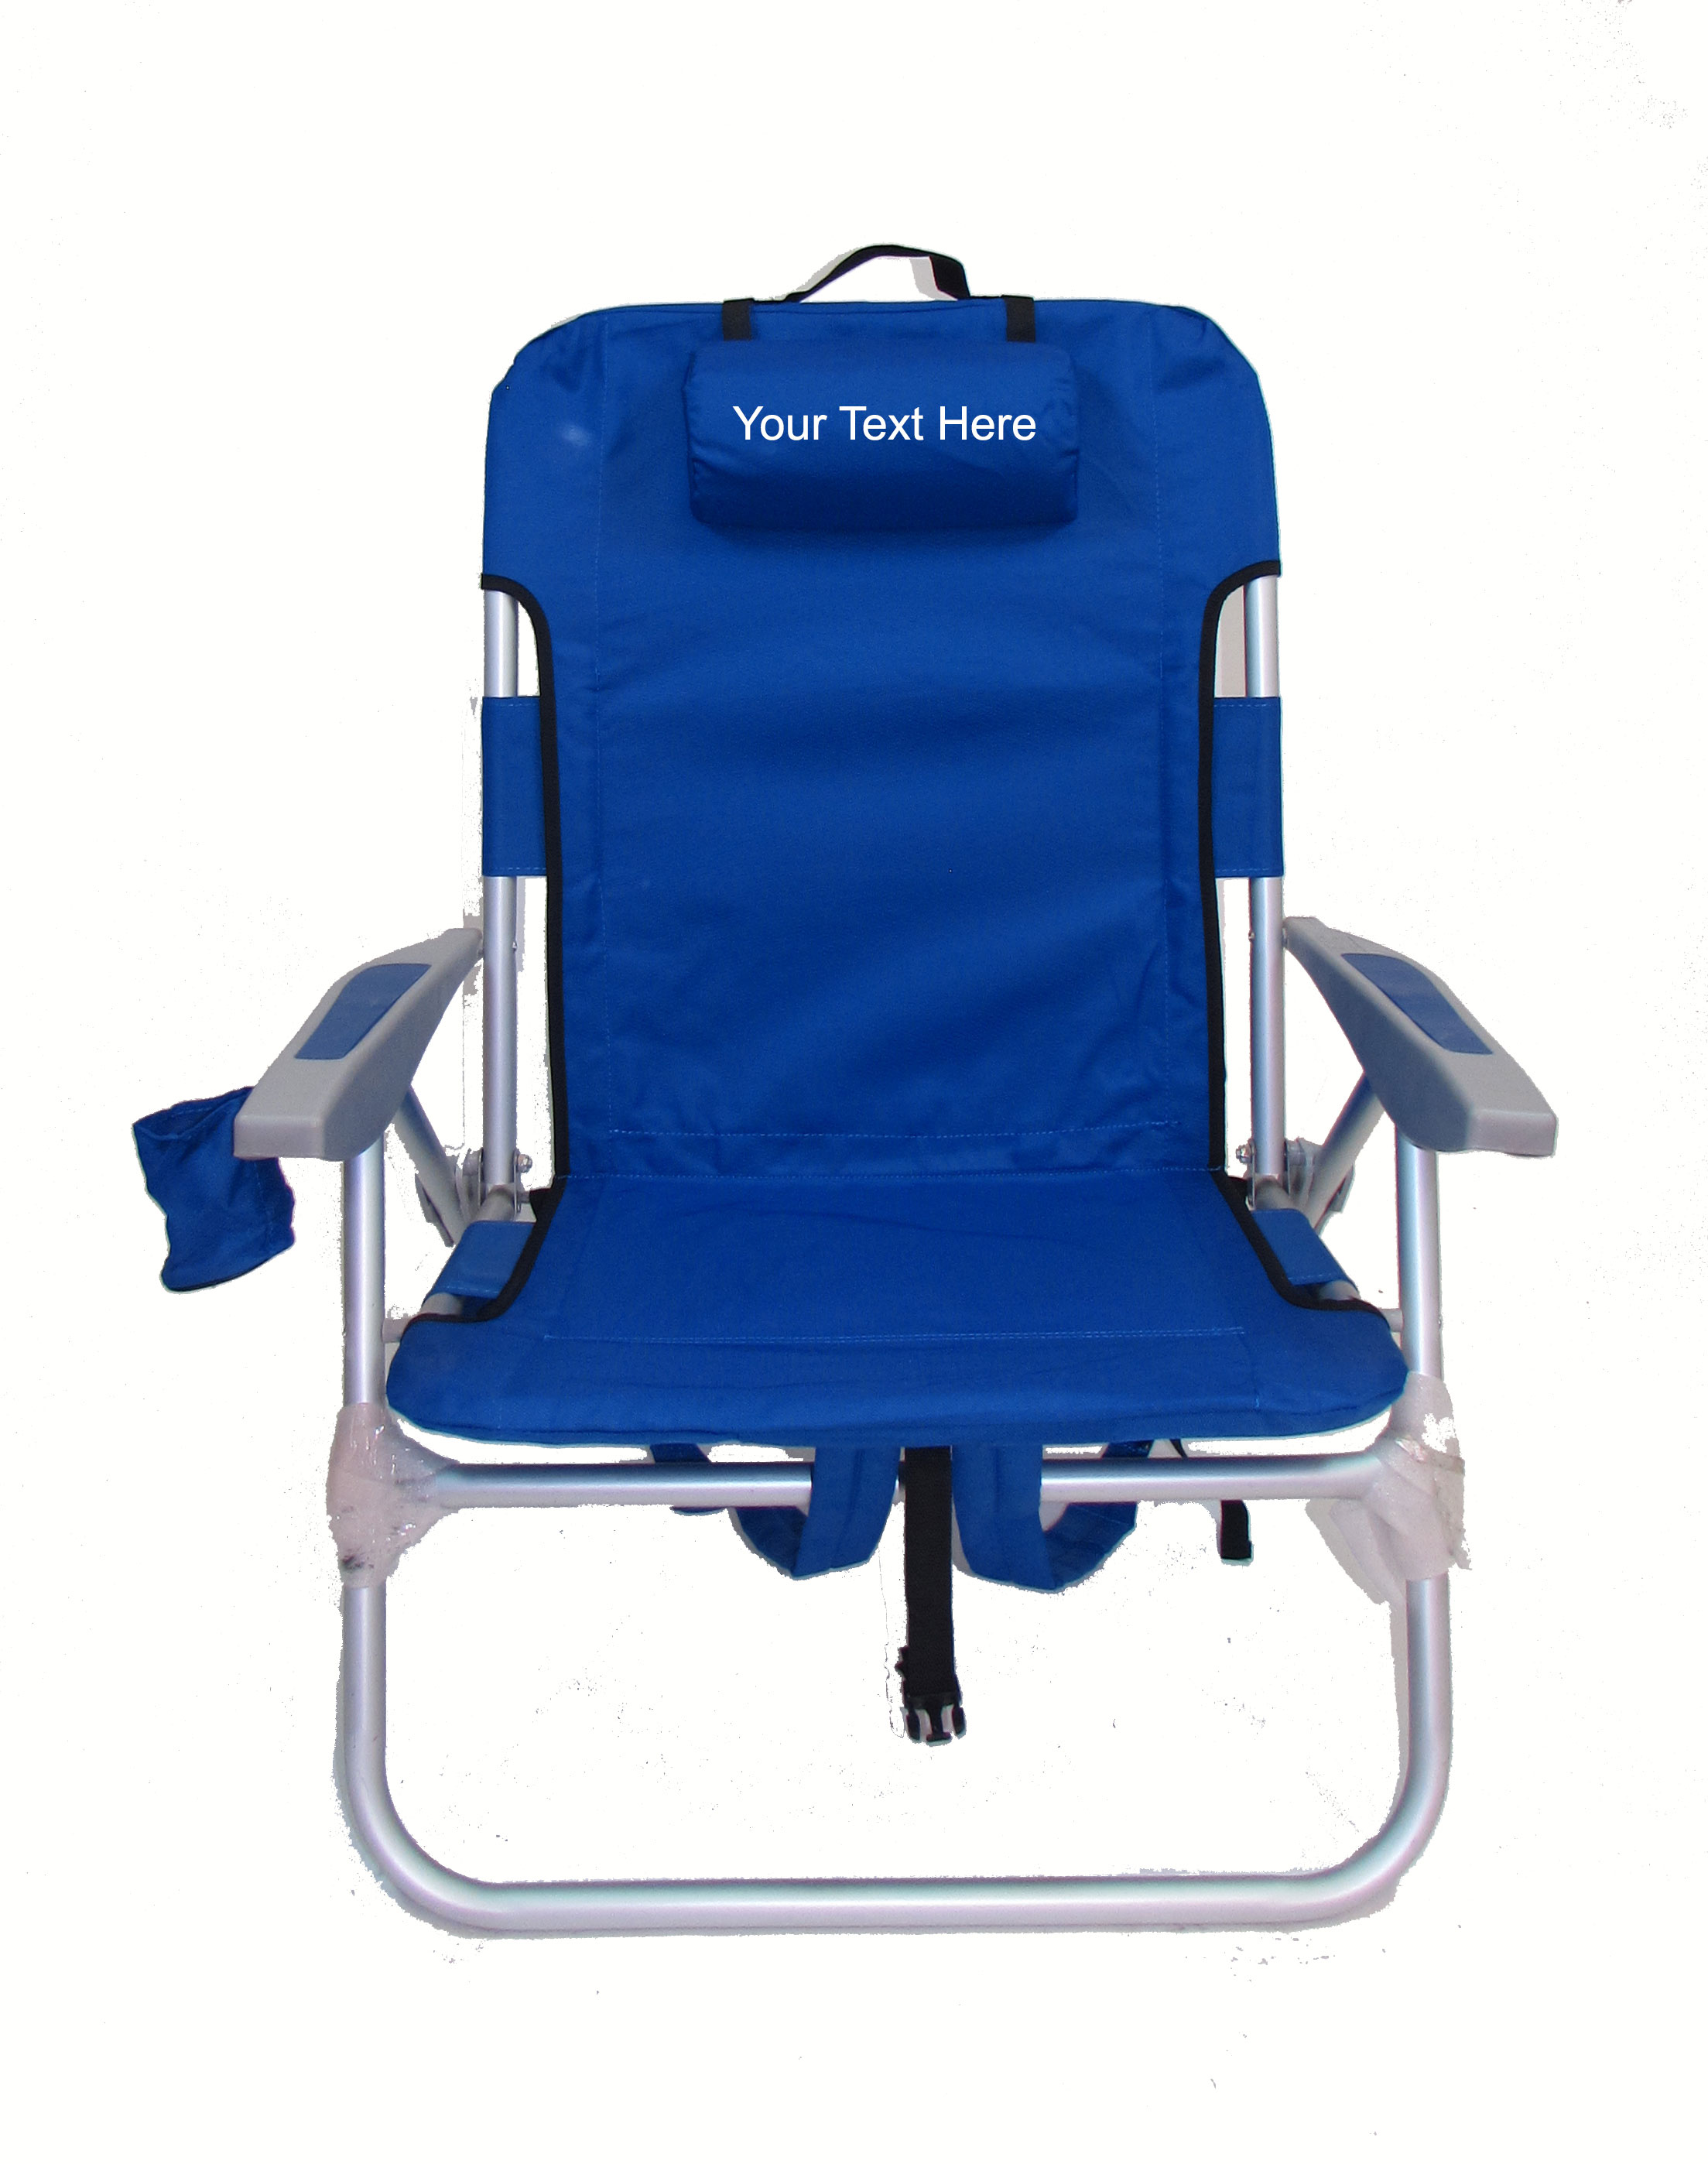 IMPRINTED Personalized Big Boy Extra Wide Backpack Chair by Rio Beach